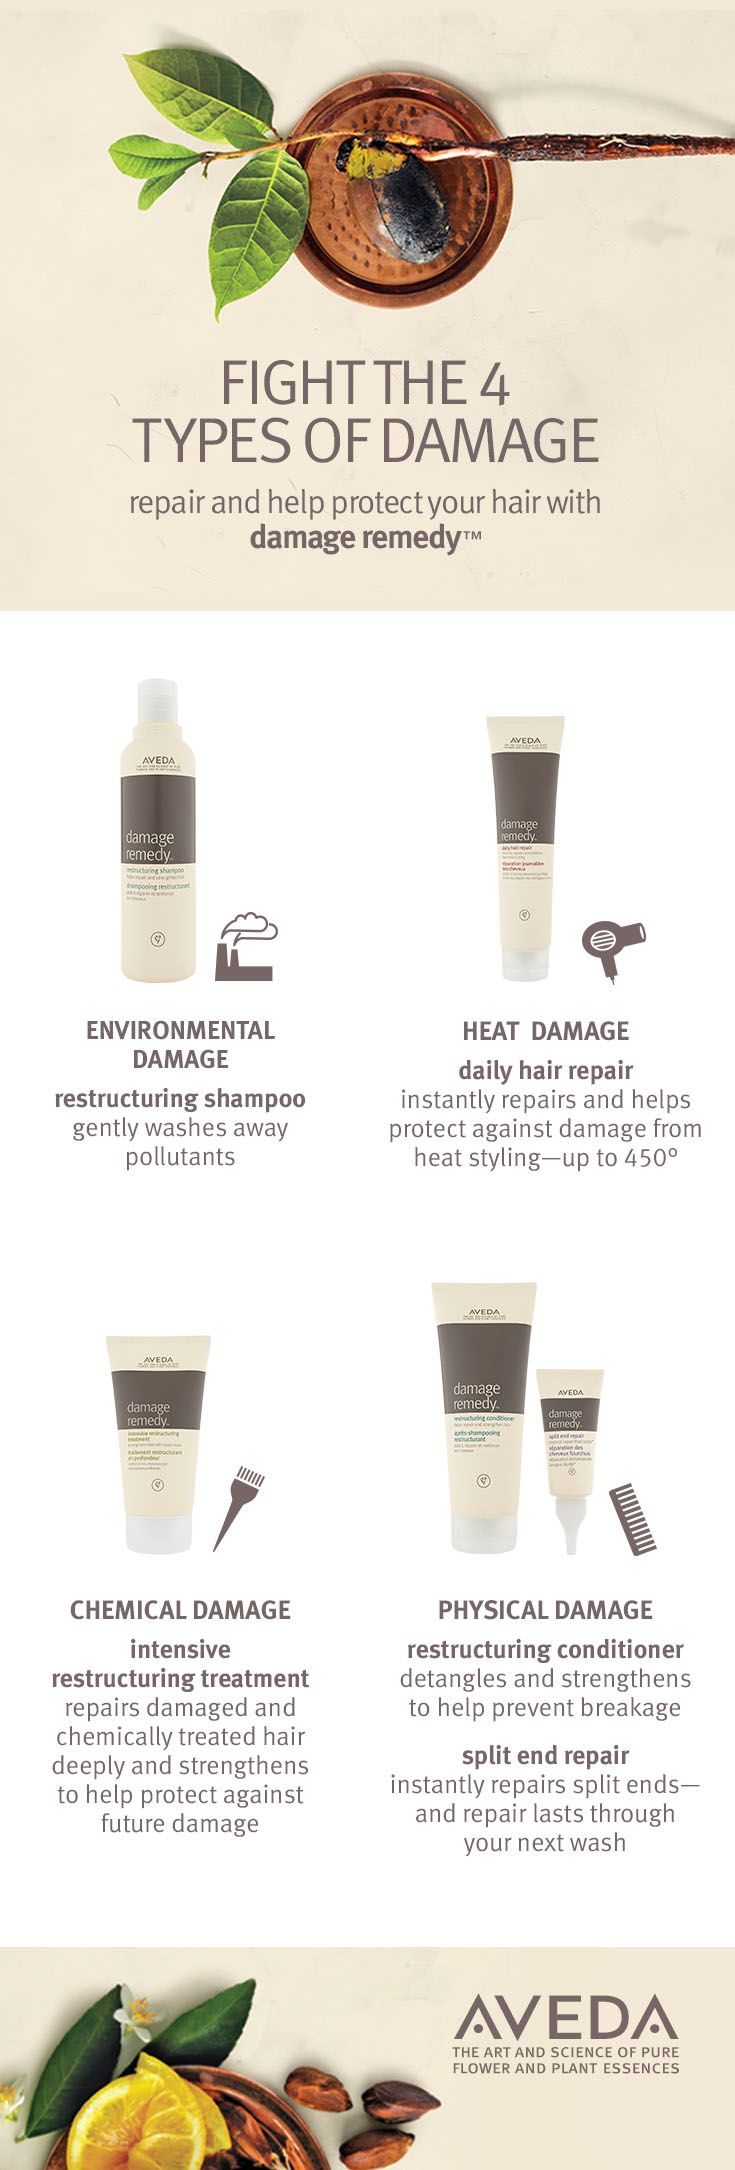 It's nature's remedy for damaged hair. Our Damage Remedy line helps repair environmental​ damage, heat damage, chemical damage or physical damage for beautiful, softer hair. Remedies include the Damage Remedy Intensive Restructuring Treatment and Split End Repair.